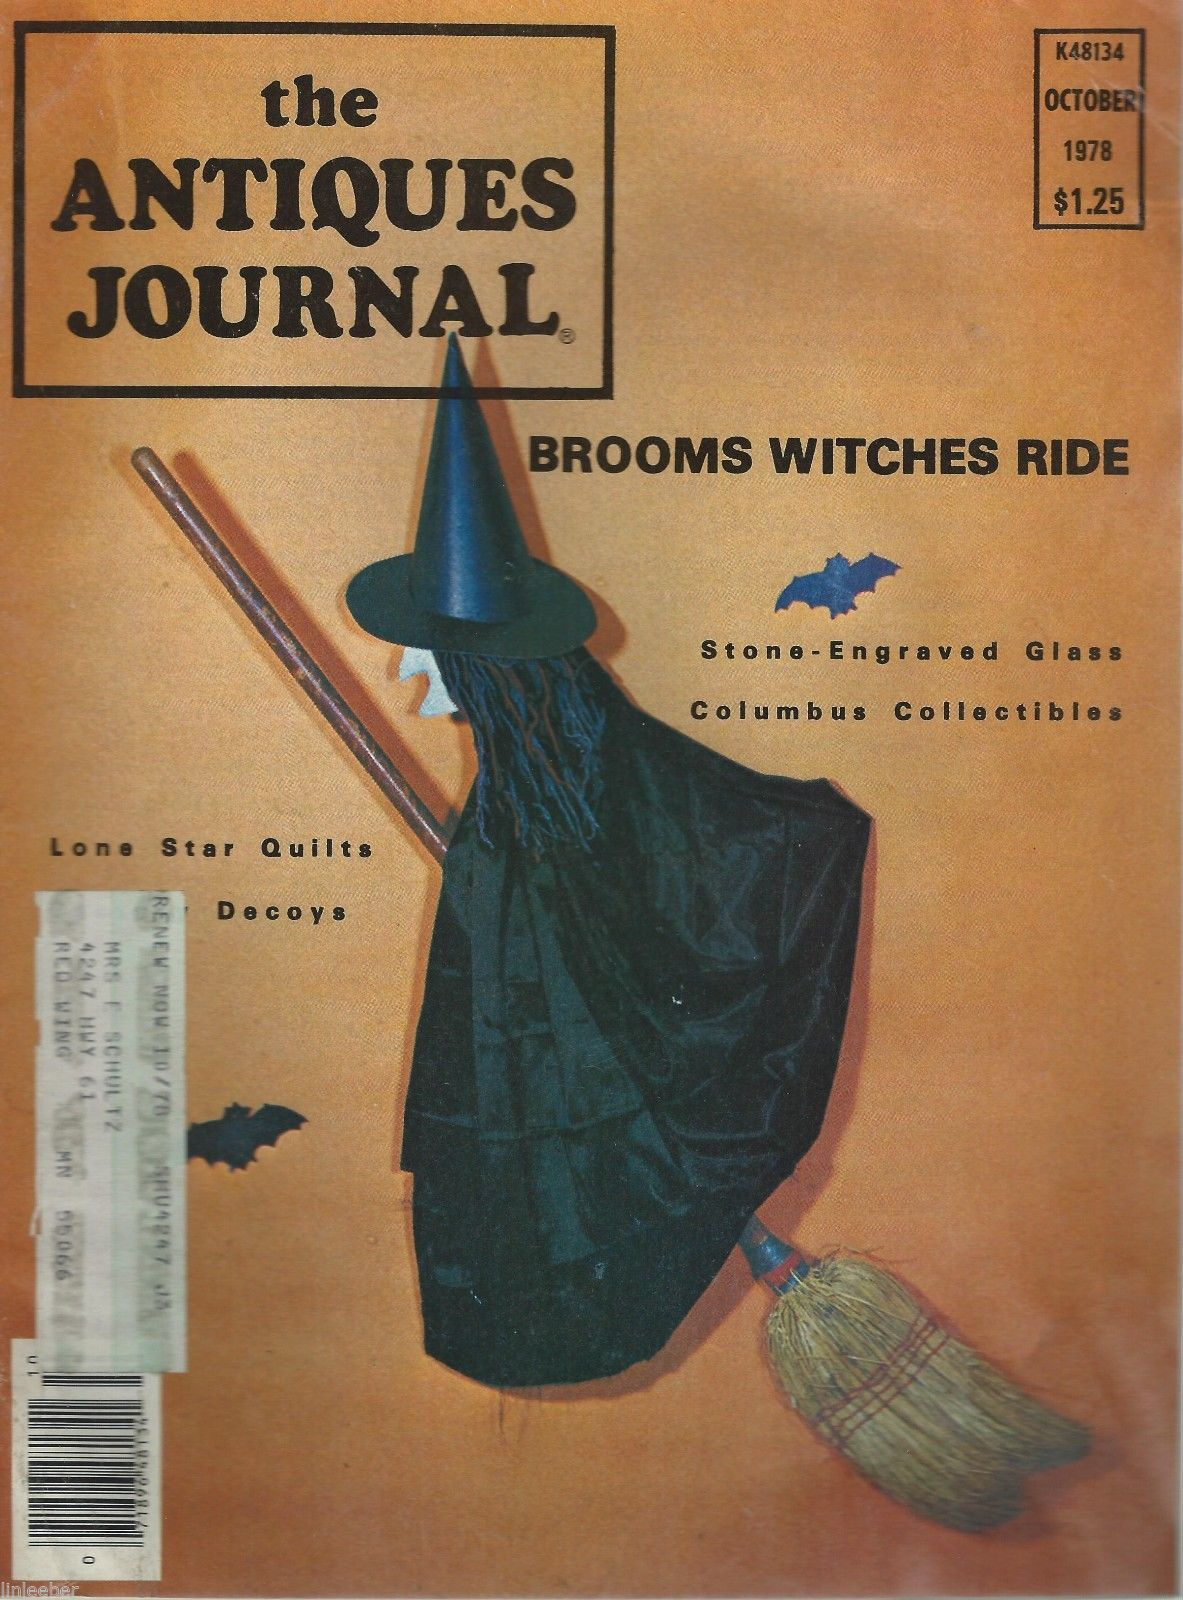 Primary image for The Antiques Journal-October 1978-Brooms Witches Ride;Lone Star Quilts;Columbus